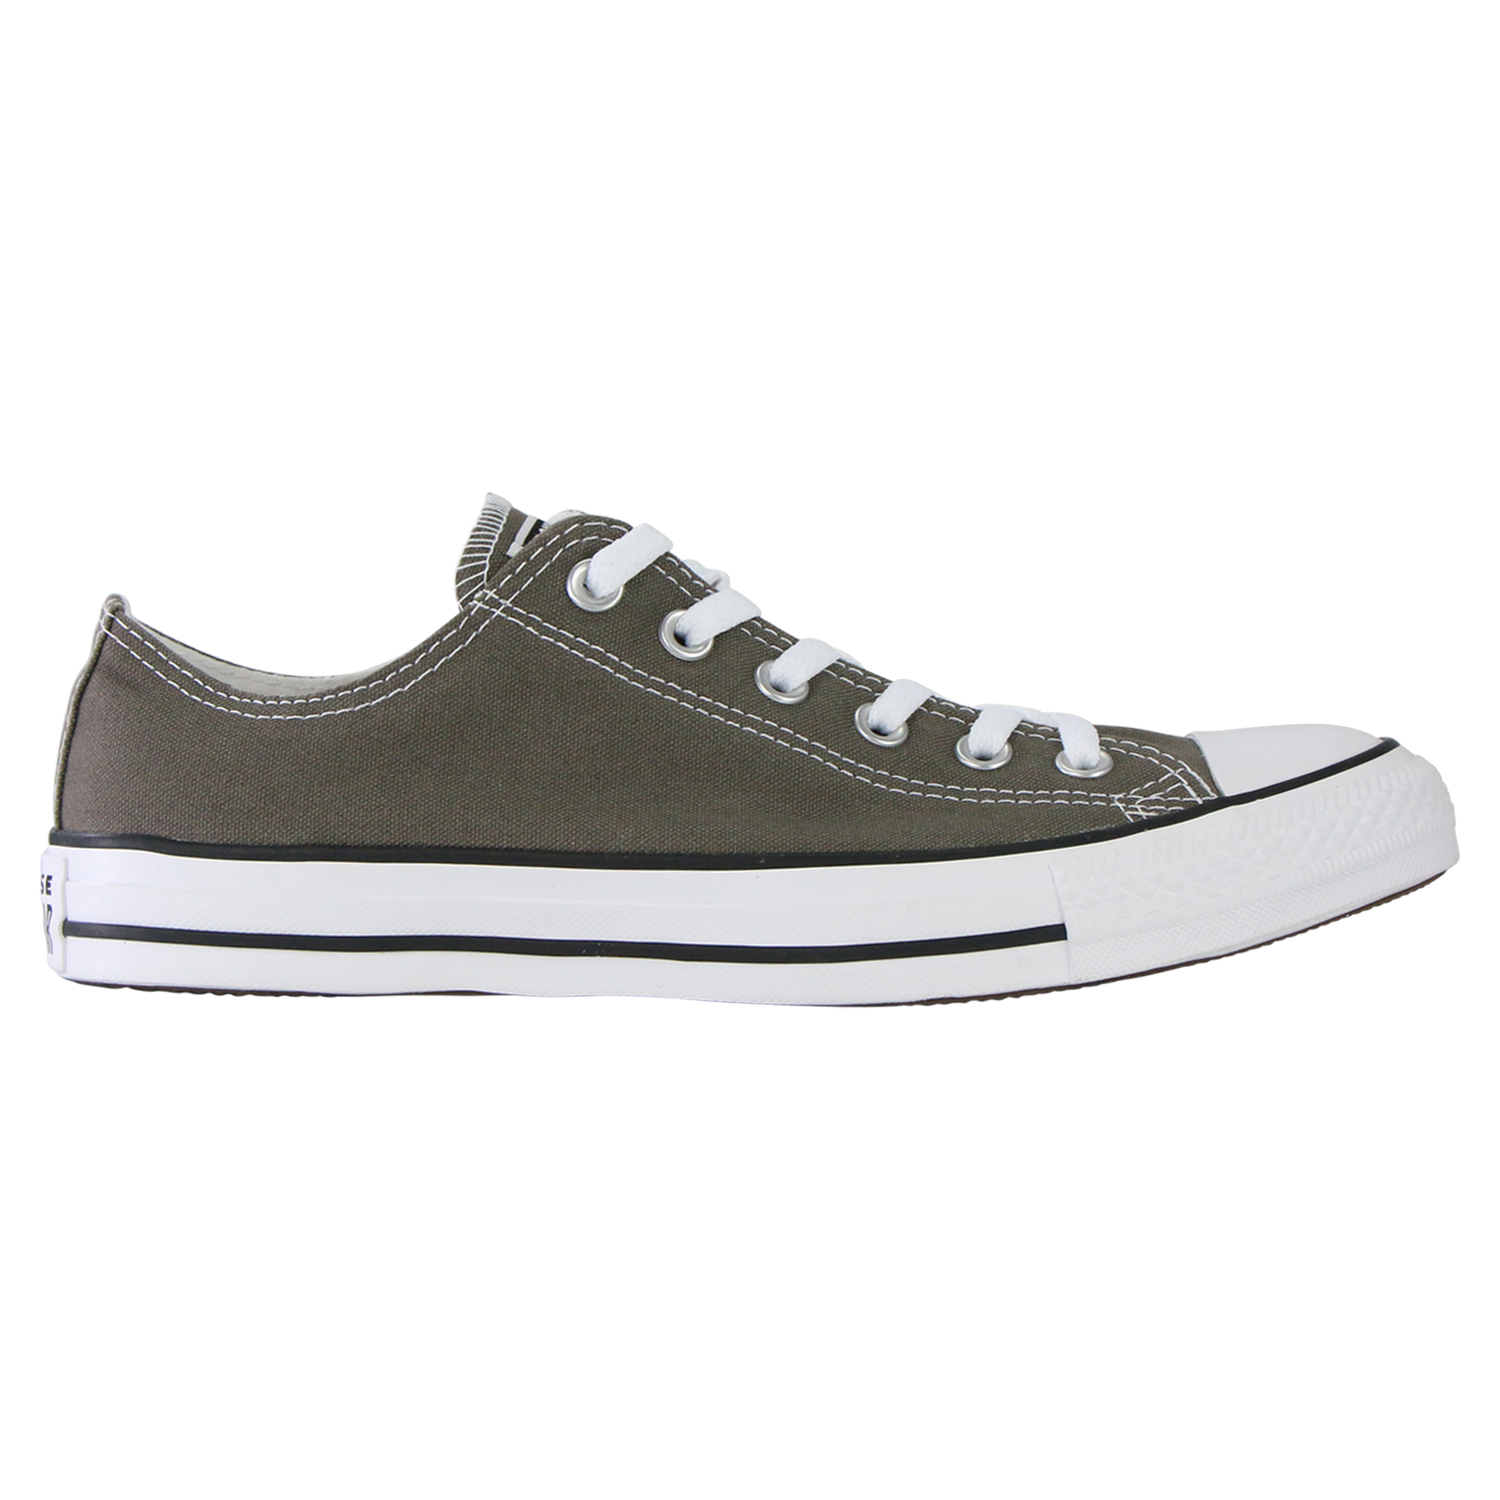 bb35bcf59e28 Converse Chucks All Star OX 1J794C Charcoal Canvas Schuhe Sneaker ...